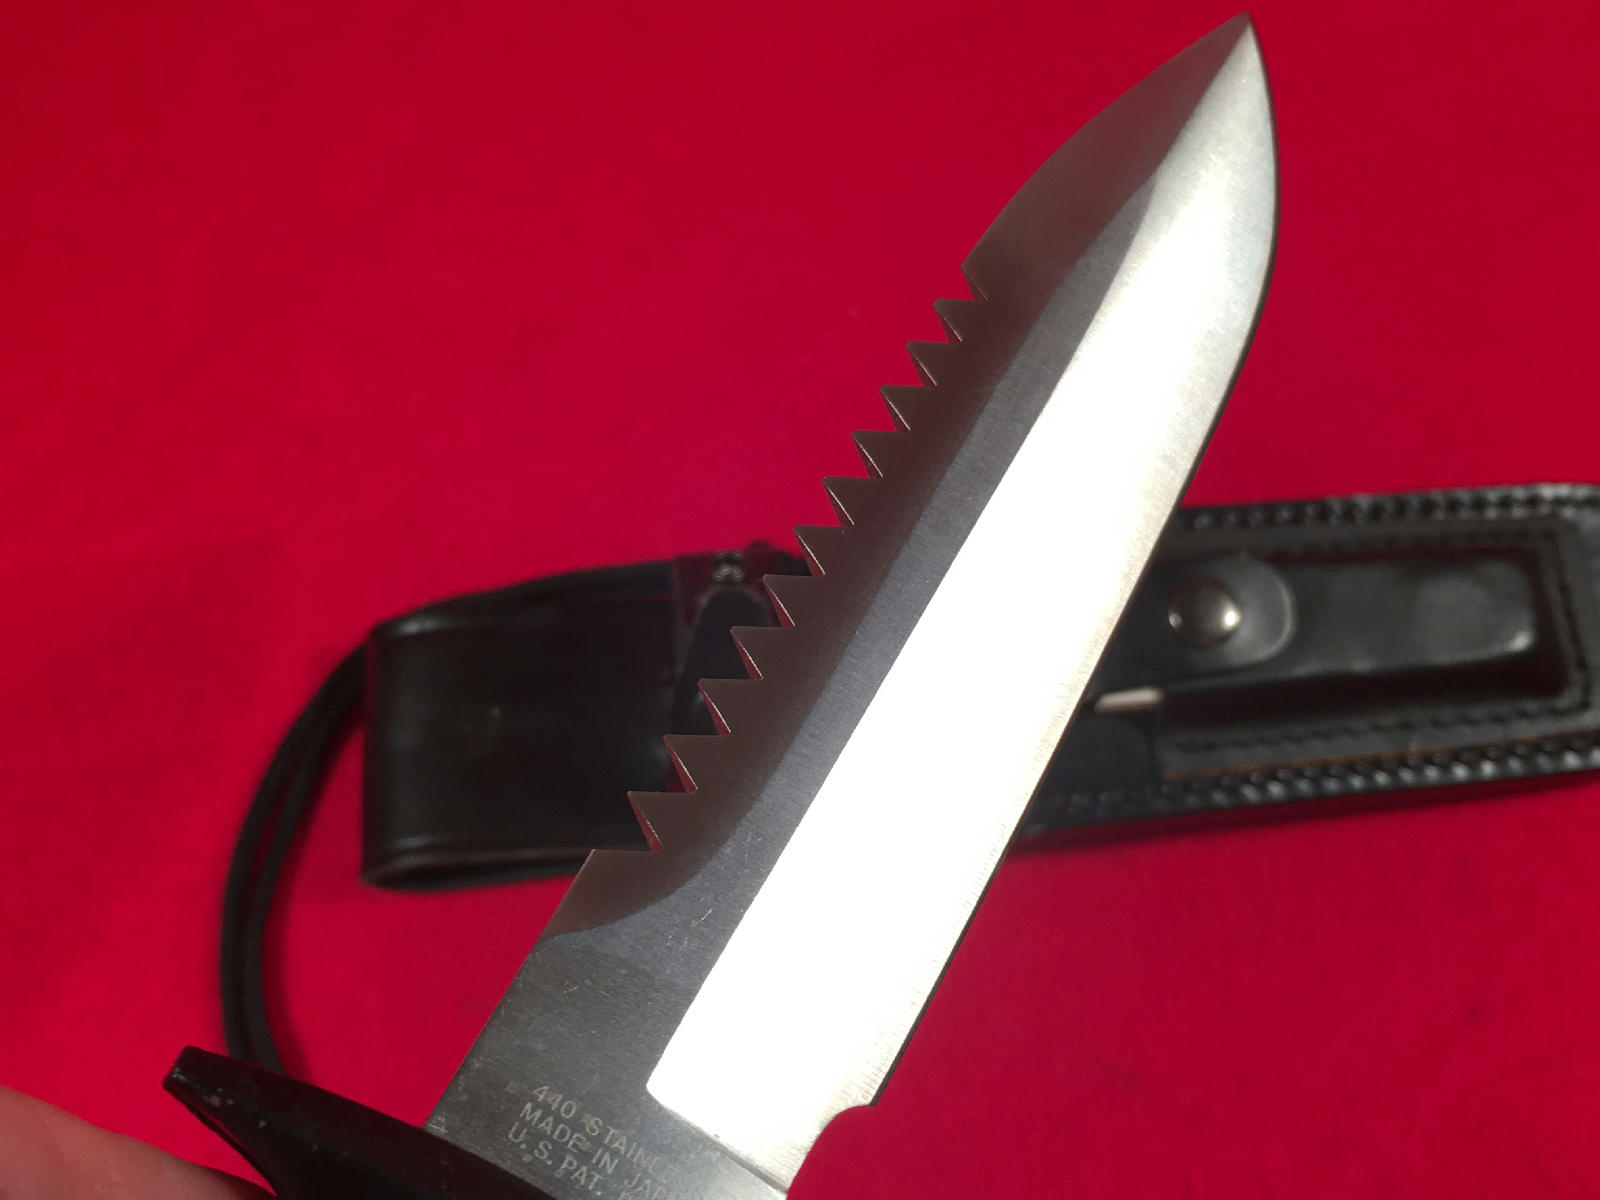 Life Knife Lifeknife Commando Stainless Survival Knives W Sheath Made In Japan Ebay